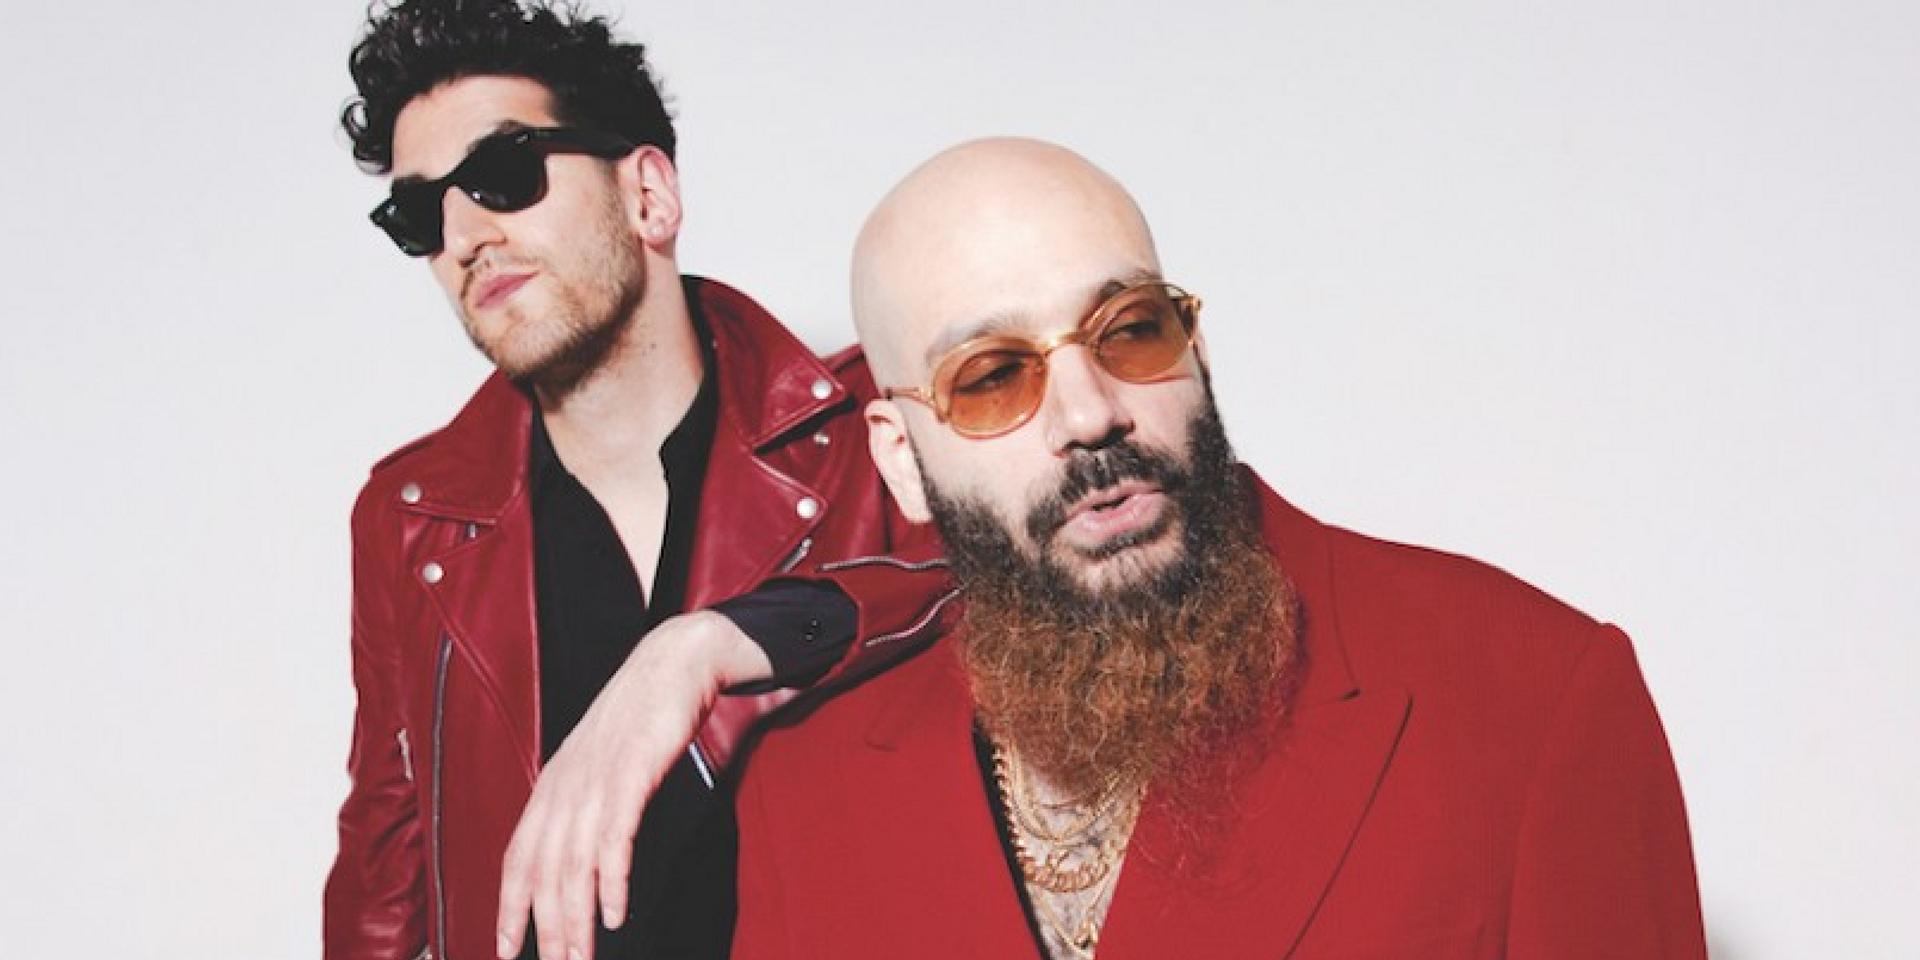 Collective Minds announces Southeast Asian Chromeo Tour – Singapore, Kuala Lumpur and more confirmed